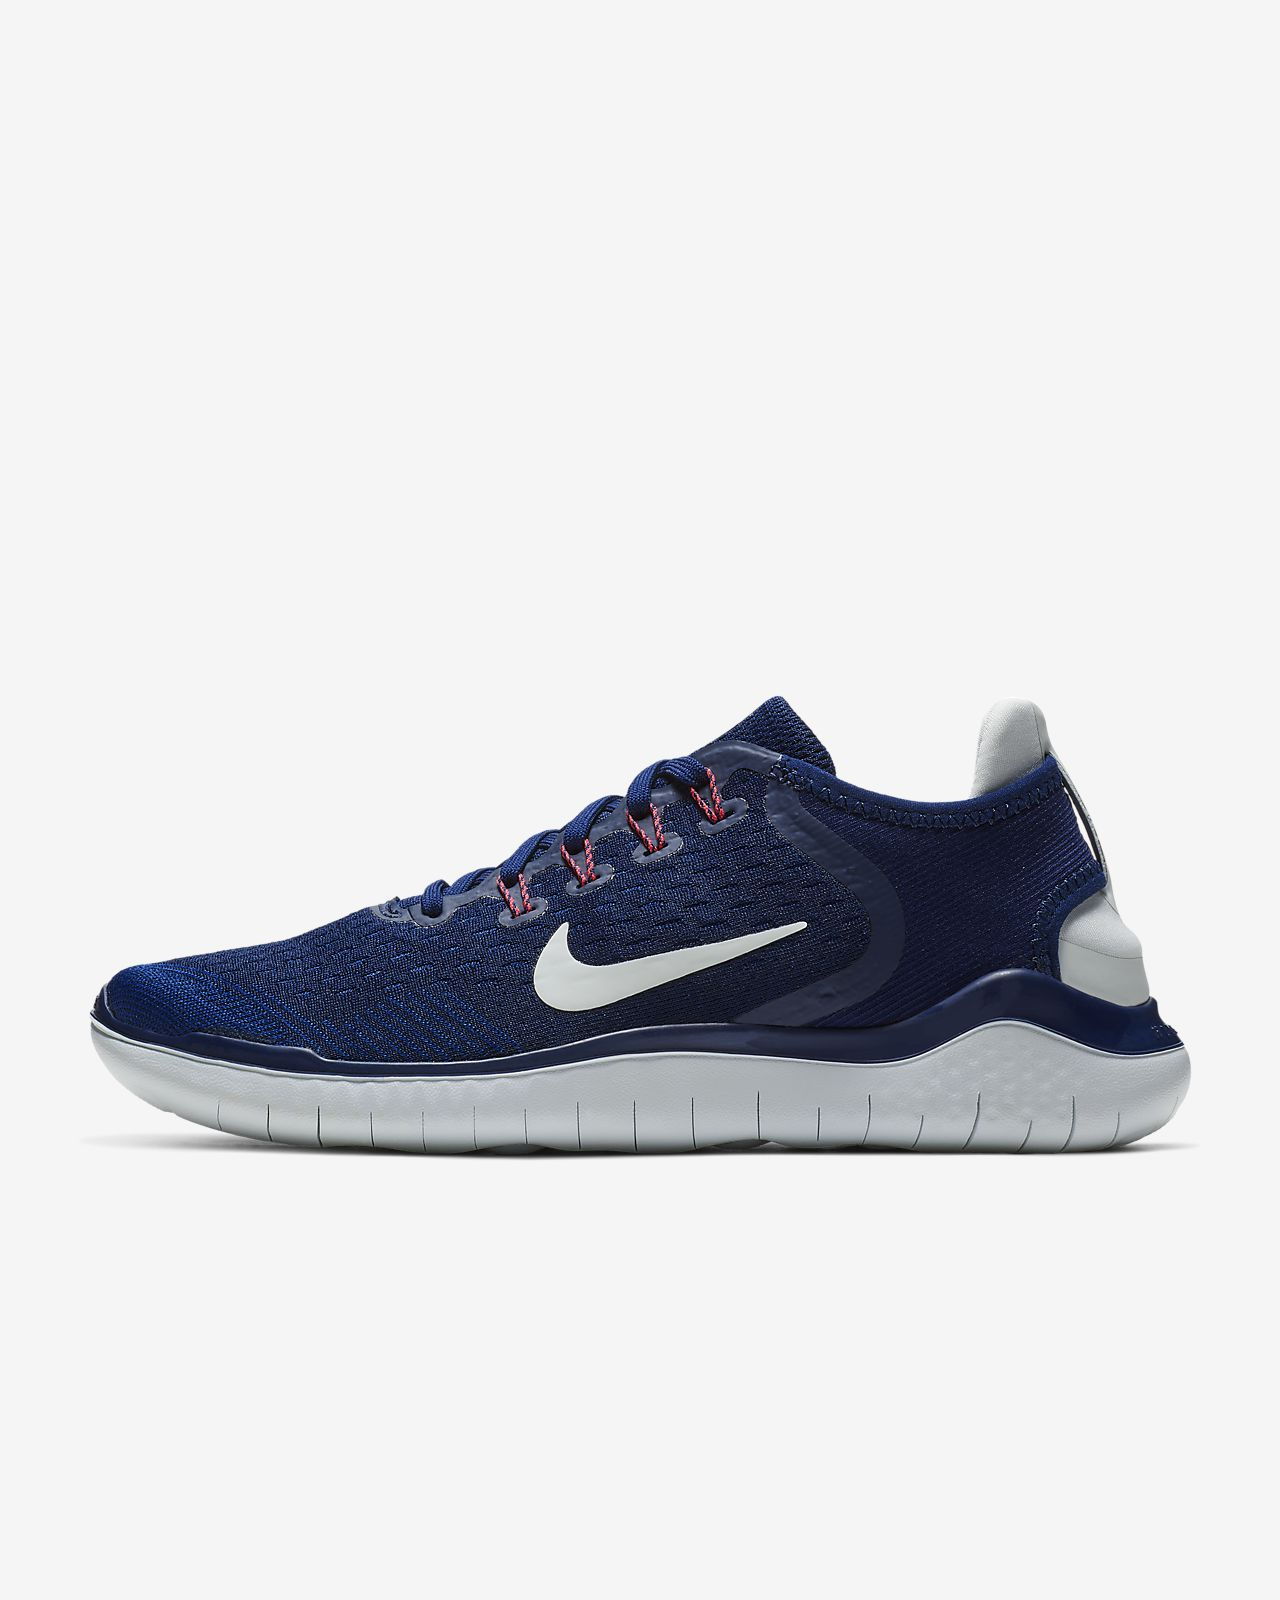 best sneakers ab9f0 03d4c Women s Running Shoe. Nike Free RN 2018